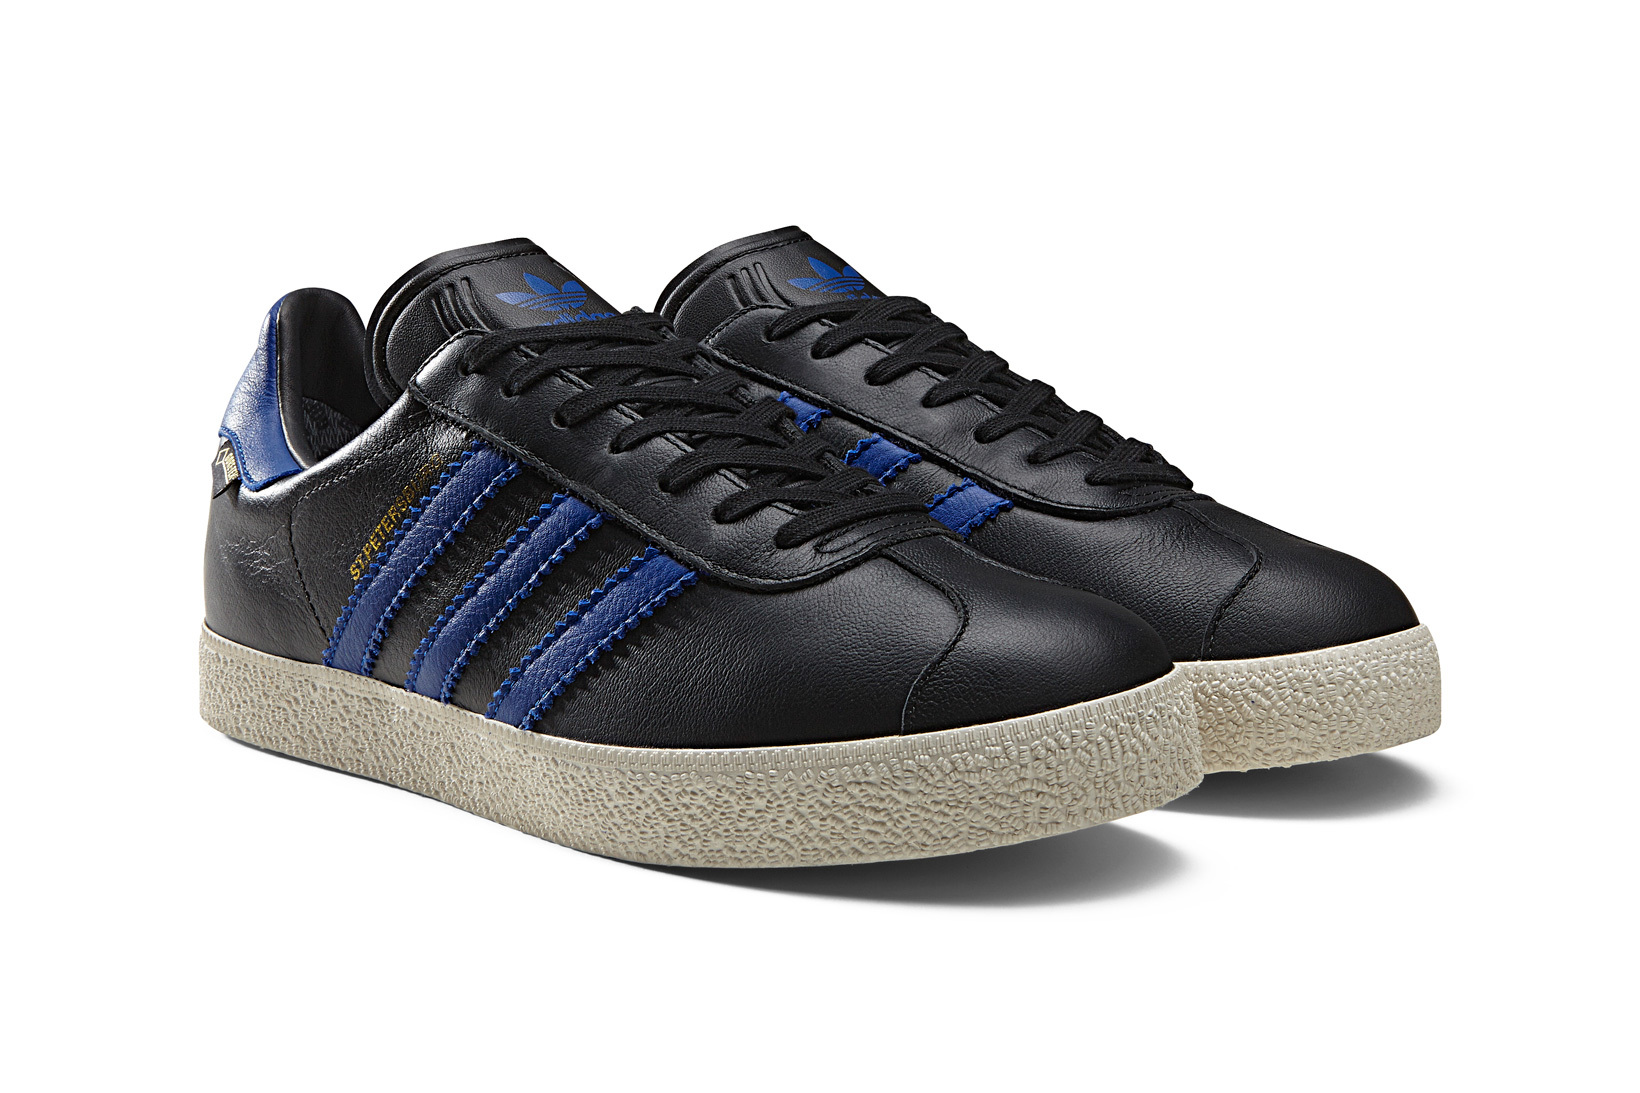 adidas-originals-gazelle-gtx-city-pack-russian-cities-2